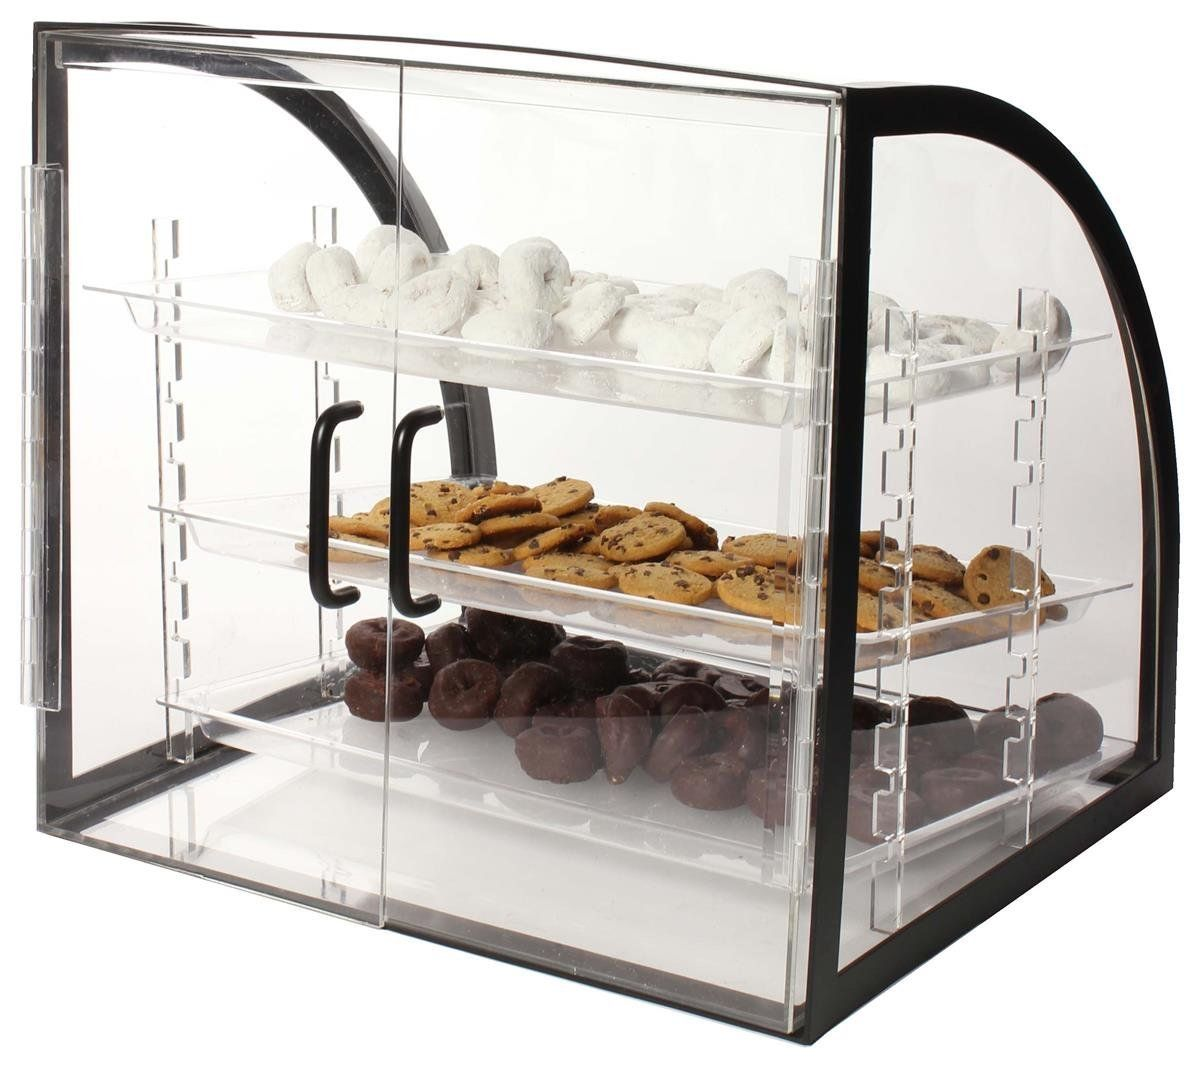 Amazon Com Countertop Bakery Display Case Clear Acrylic With Black Metal Frame Rear Loading Doors Bakery Display Case Bakery Display Glass Cabinets Display